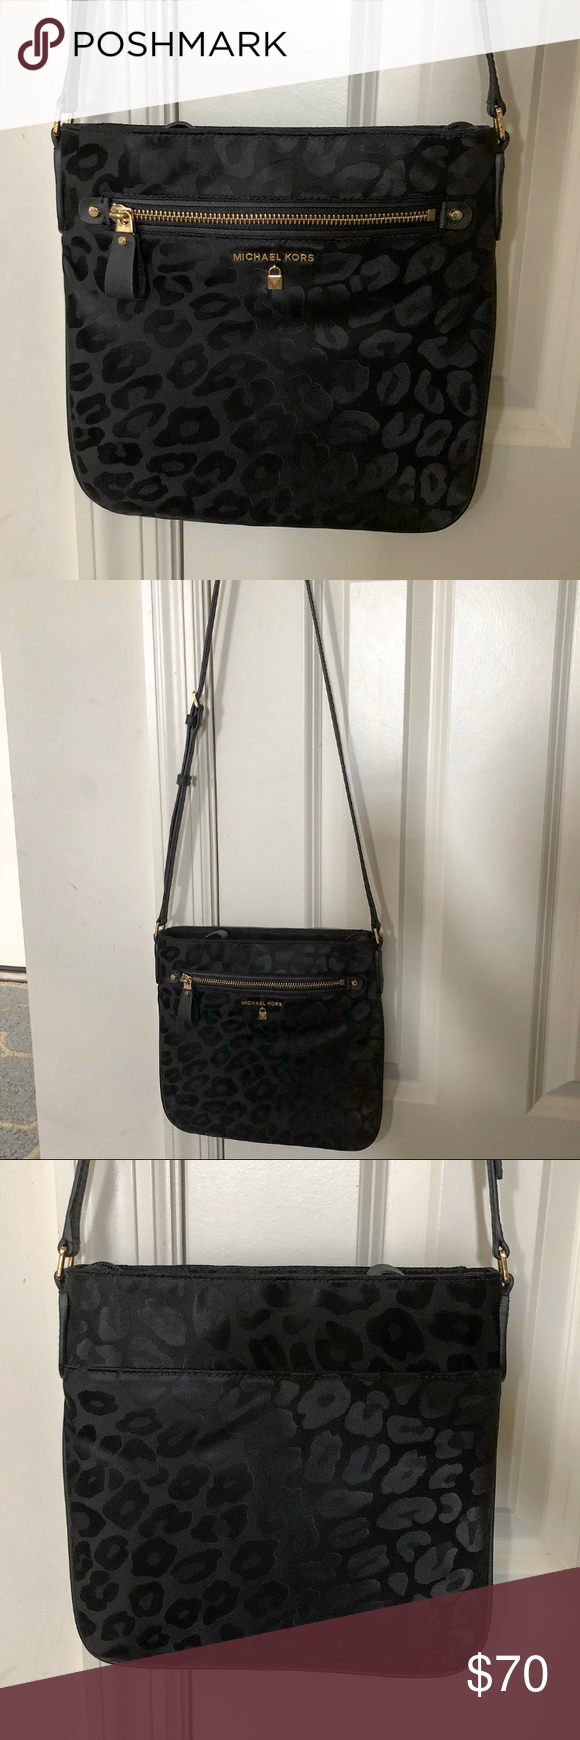 "32d6c81e9a2ee2 Michael Kors ""Kelsey"" Crossbody Nylon Kelsey is durable and beautiful!  Brand new with"